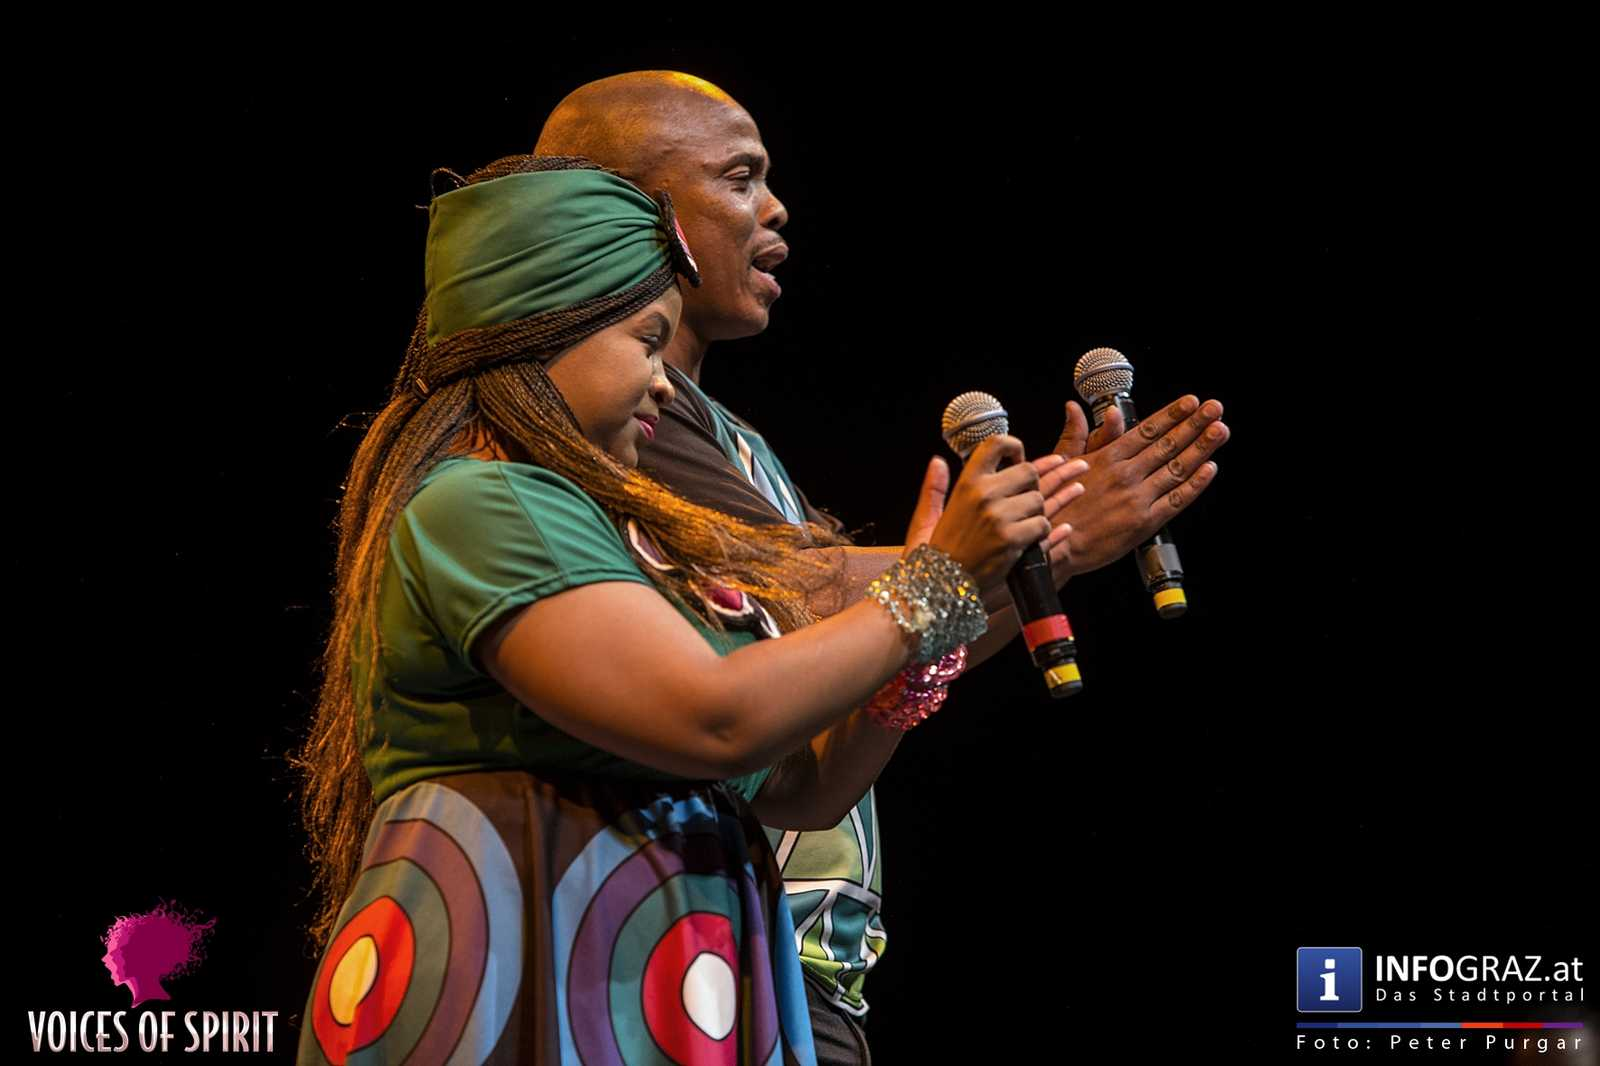 soweto gospel choir internationales chorfestival statdthalle graz voices of spirit eroeffnung festivals 2016 027